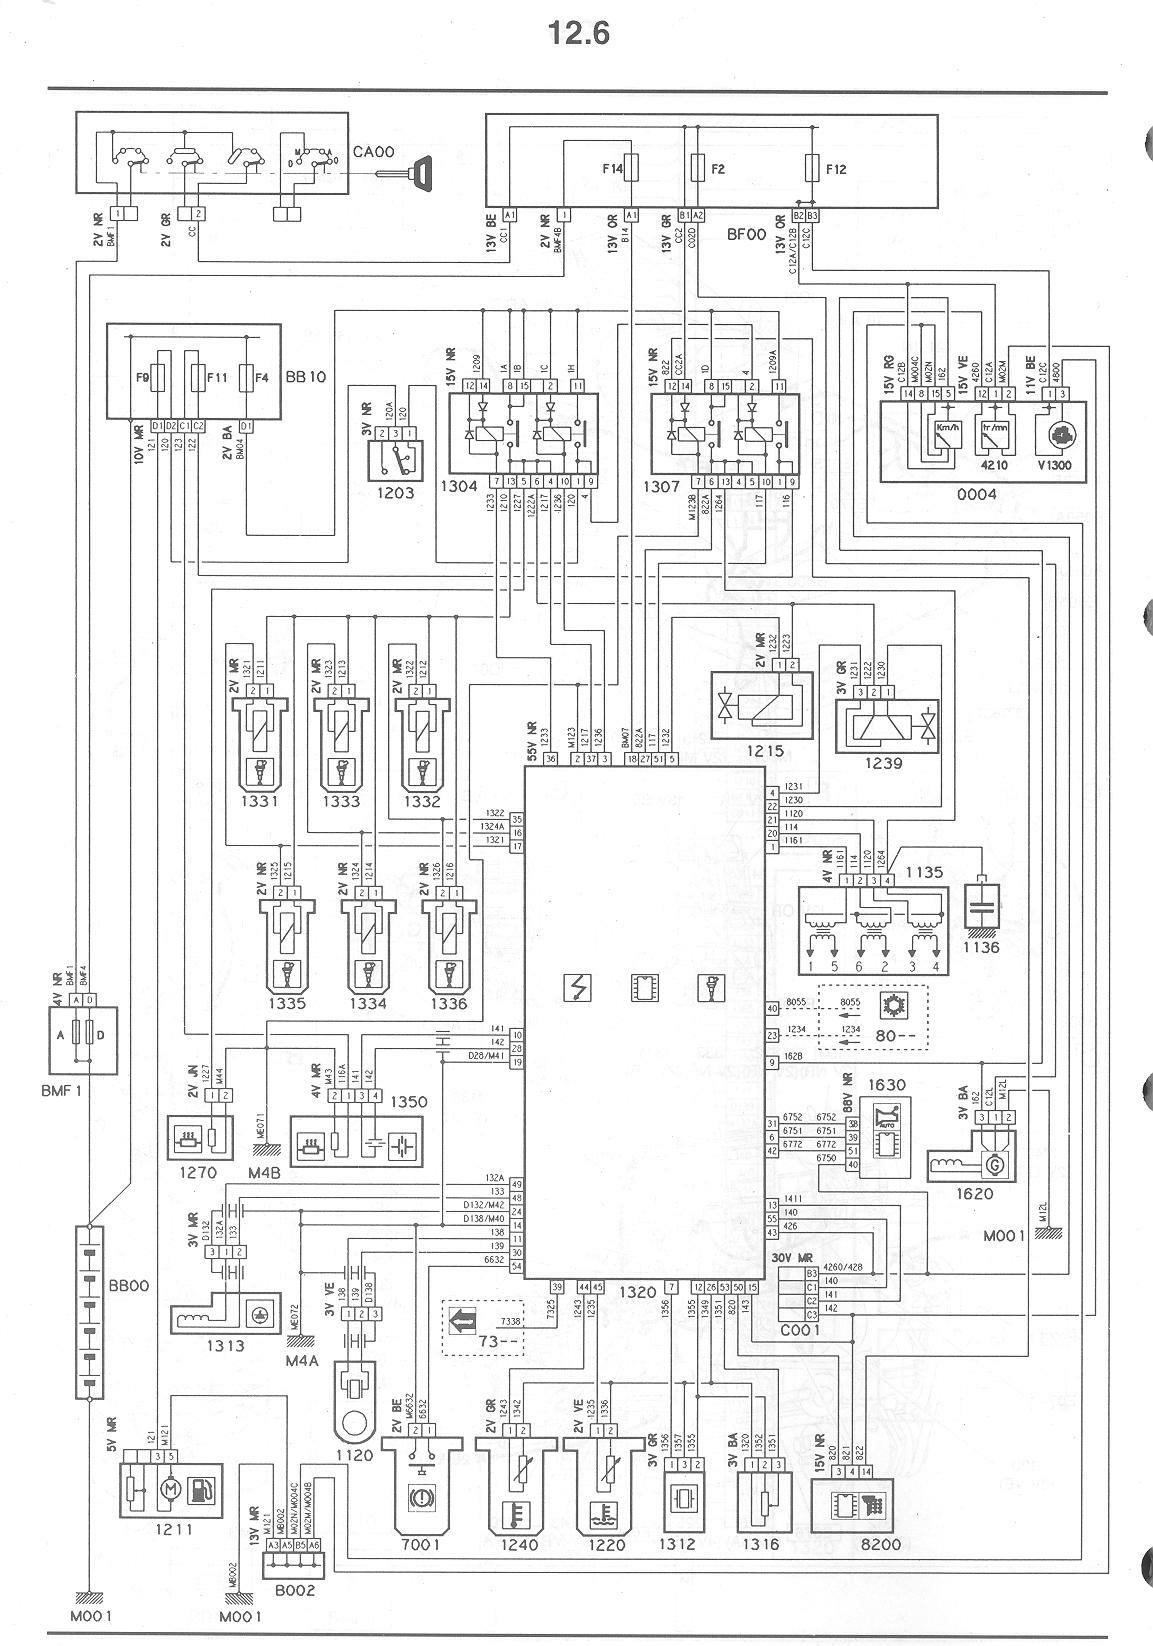 citroen berlingo fuse box diagram wiring with Citroen Berlingo 1 6 Hdi Engine Wiring Diagram on Citroen Berlingo 1 6 Hdi Engine Wiring Diagram furthermore Fiat Doblo  bi Cargo Sigorta Kutusu together with Citroen Relay Wiring Diagram also 2006 Chrysler 300 Engine Fuse Box Diagram besides 2002 Chevy Tahoe Fuse Box Diagram.